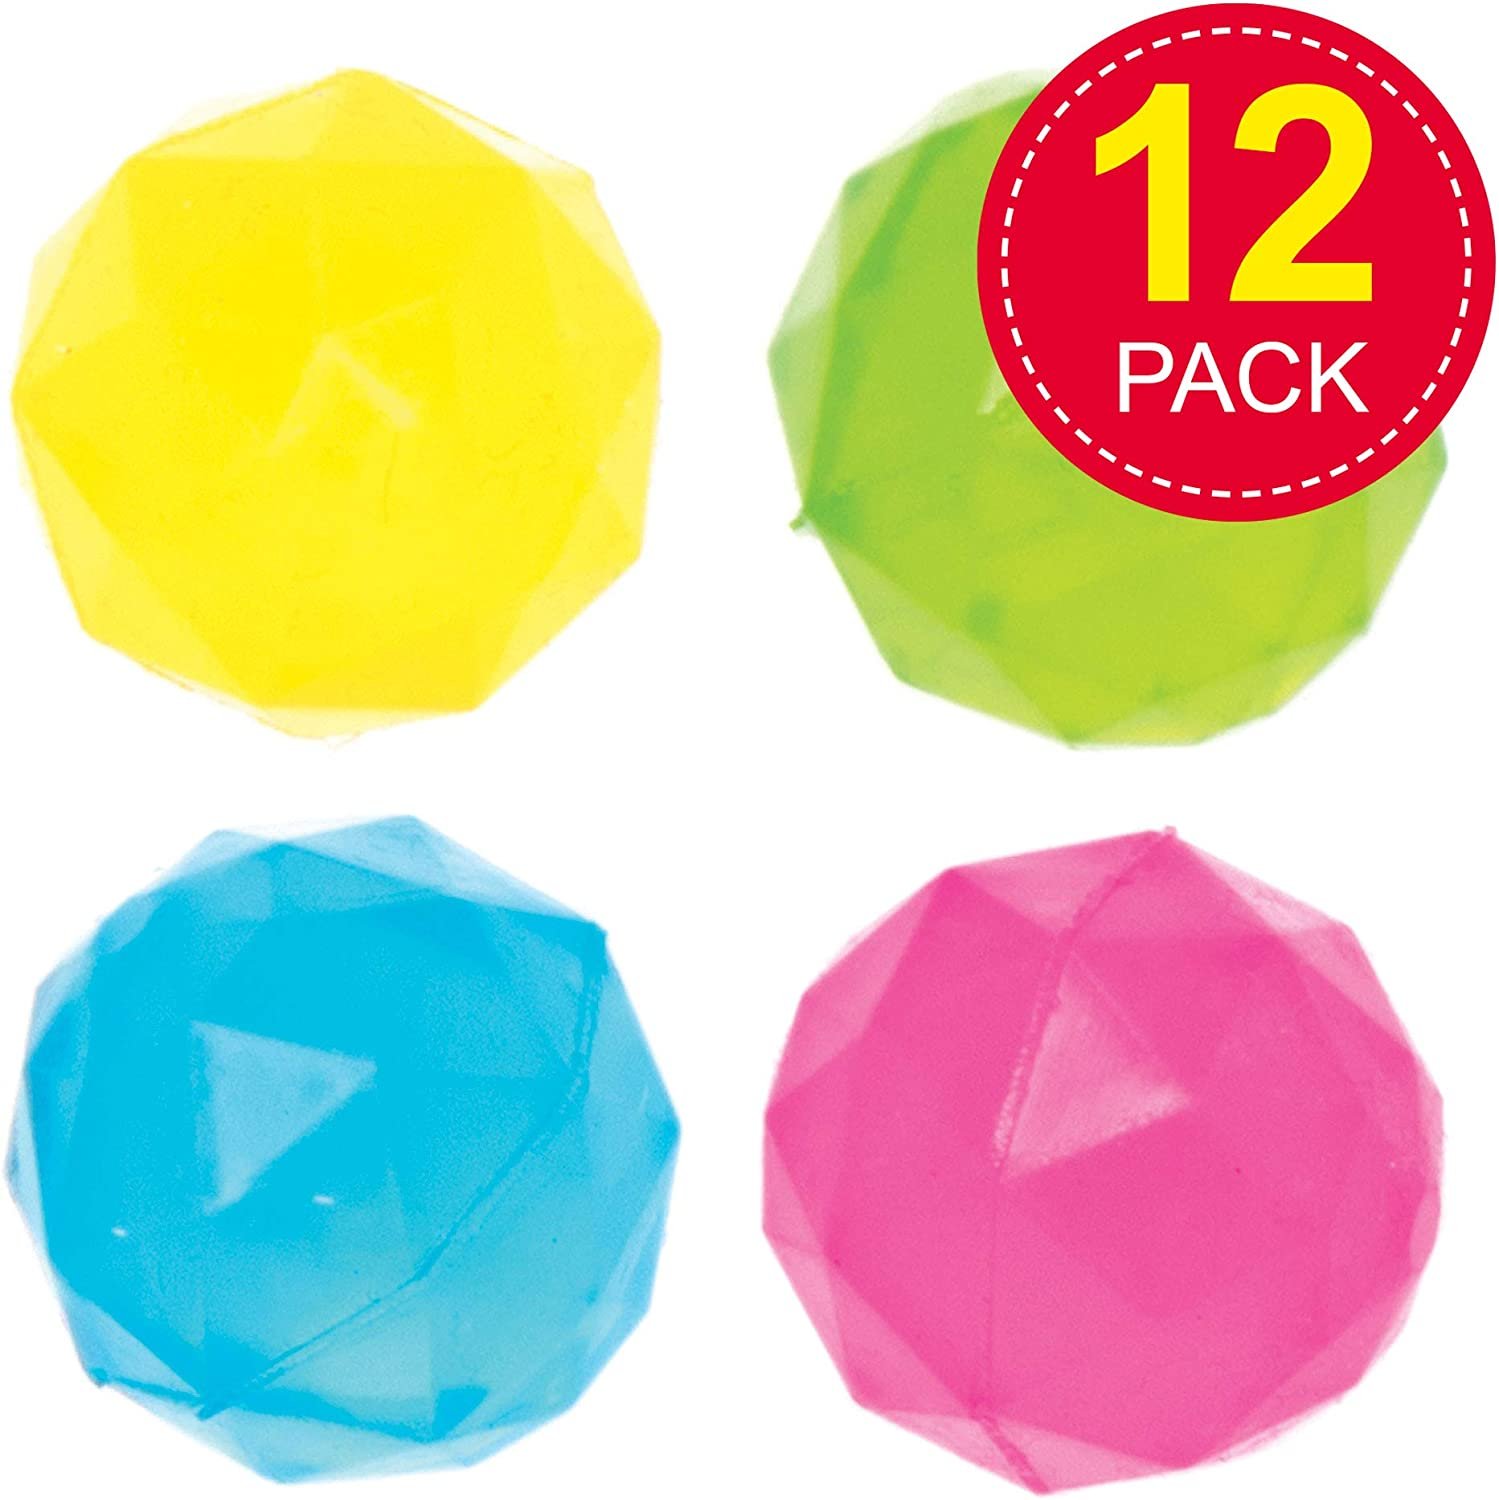 Ideal for Kids Party Favors and Goodie Bags Great Small Gifts for Children Outdoor Toys Pack of 12 Baker Ross Diamond Bouncy Balls